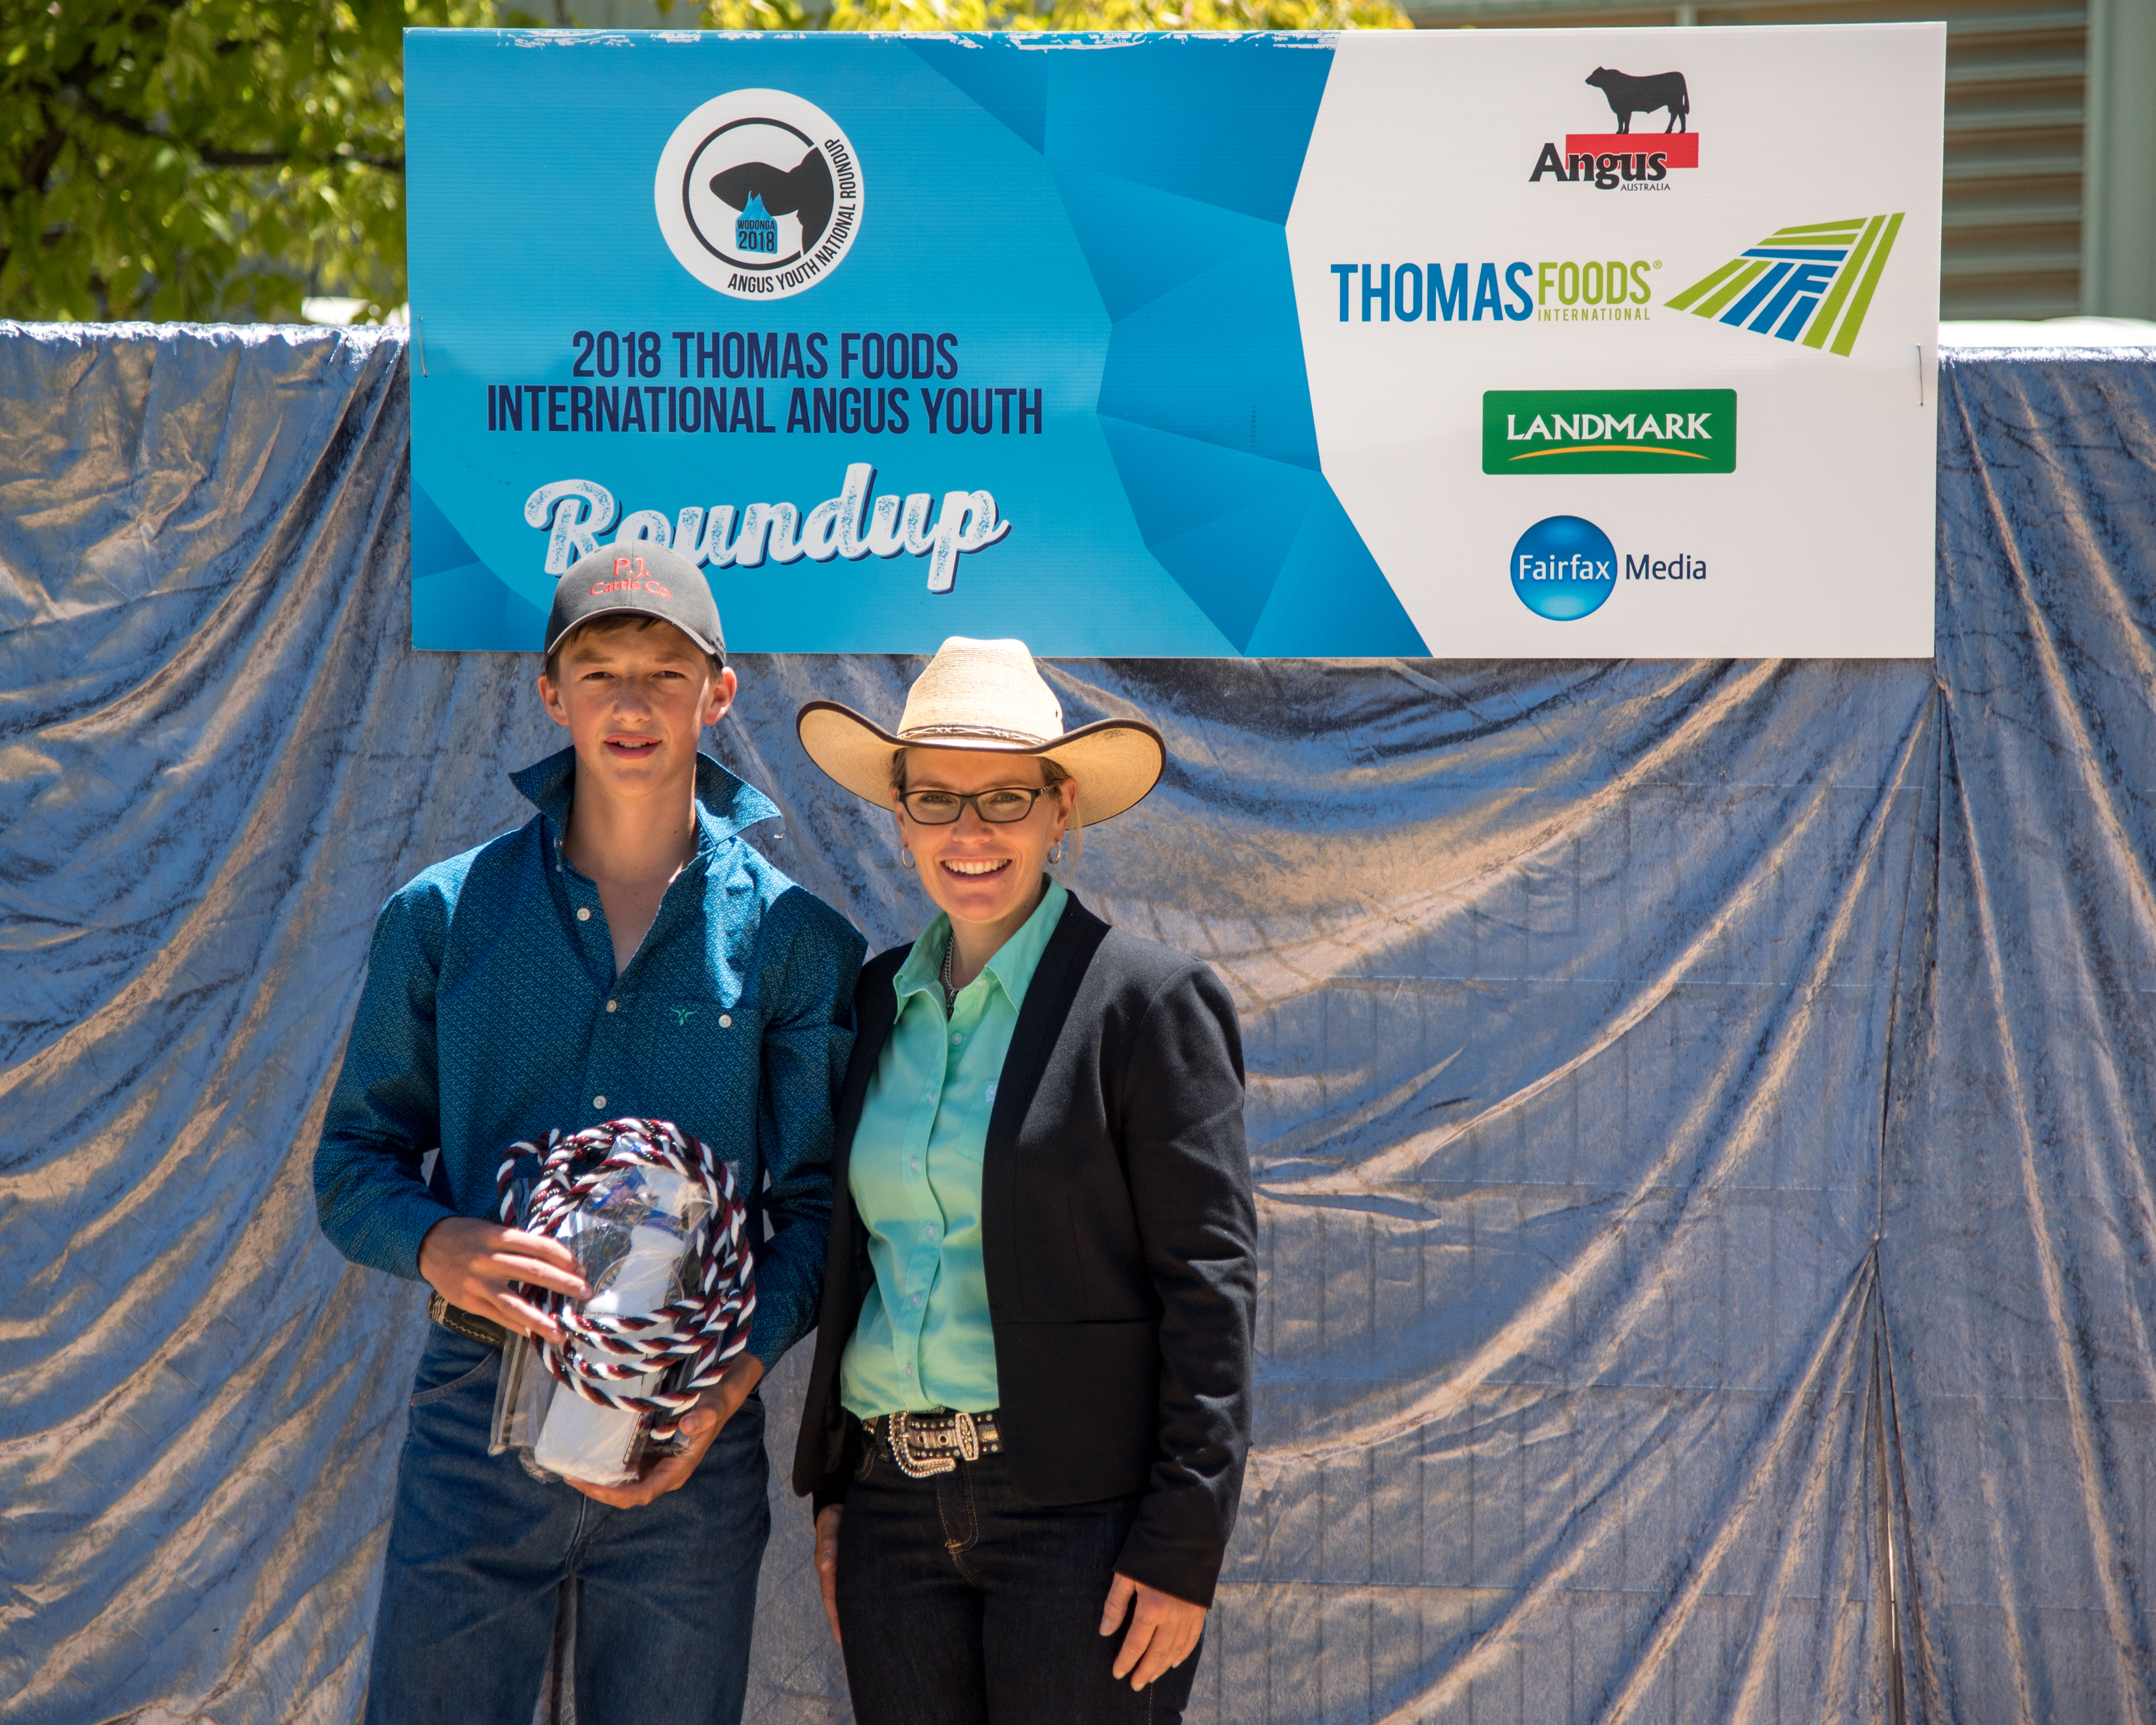 Fiona McWilliam judging the paraders at the 2018 Thomas Foods International Angus Youth Roundup with Grand Champion Parader, Lochie McLauchlan. Image Emily H Photography